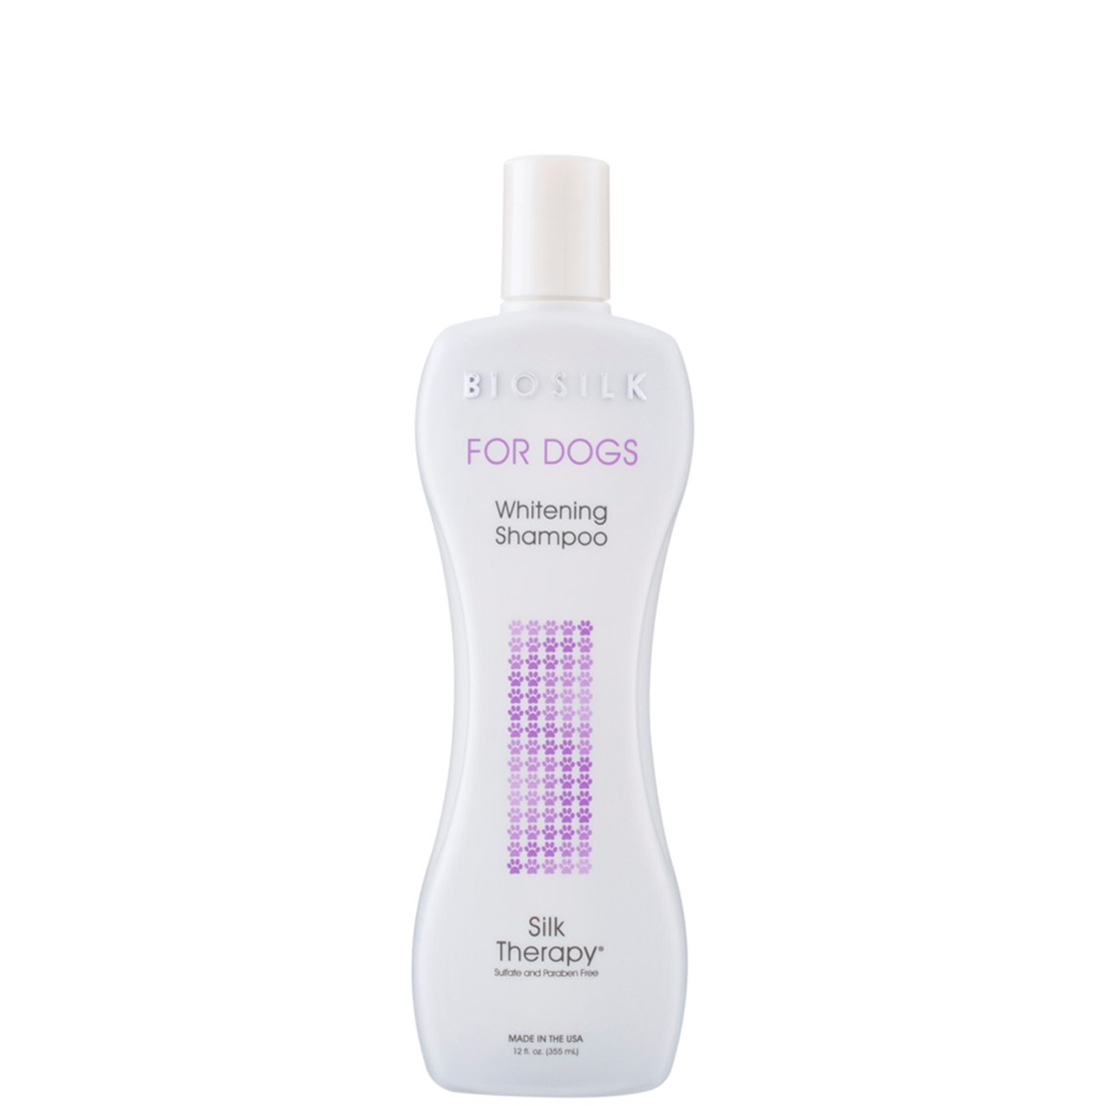 BioSilk for Dogs Whitening Shampoo